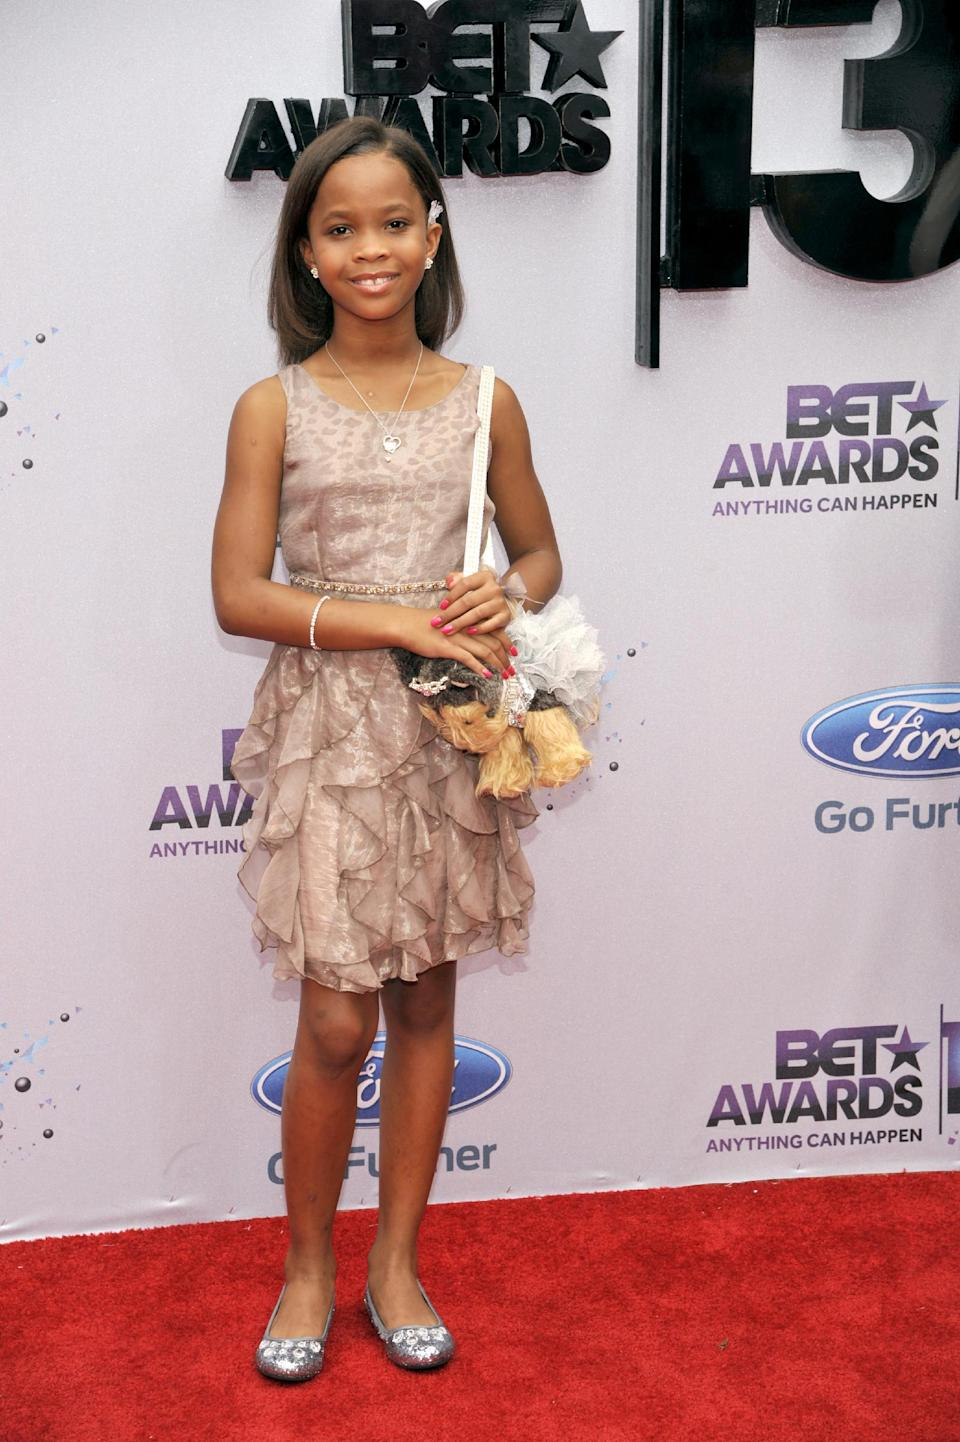 Quvenzhane Wallis arrives at the BET Awards at the Nokia Theatre on Sunday, June 30, 2013, in Los Angeles. (Photo by Chris Pizzello/Invision/AP)